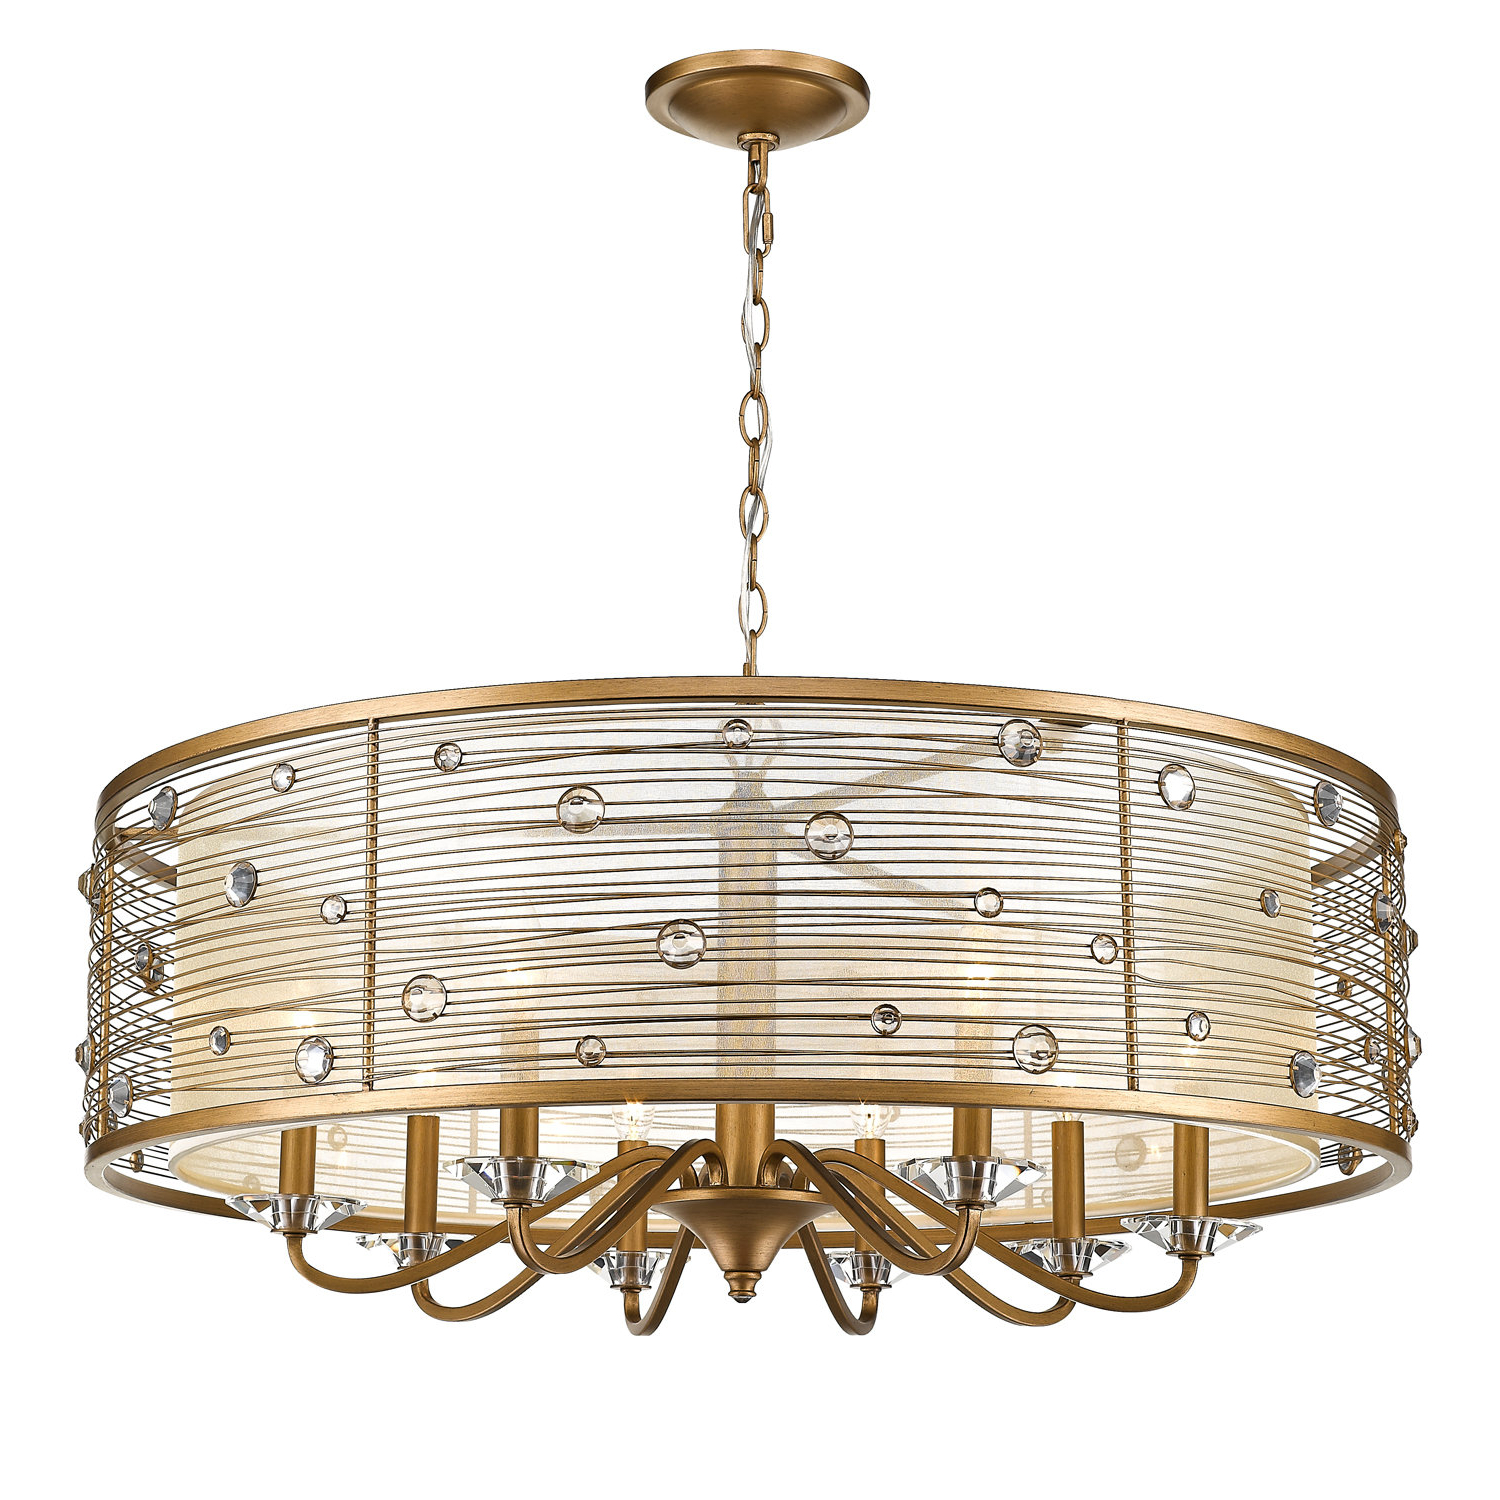 Best And Newest Hermione 5 Light Drum Chandeliers Throughout Hermione 8 Light Drum Chandelier (View 8 of 20)